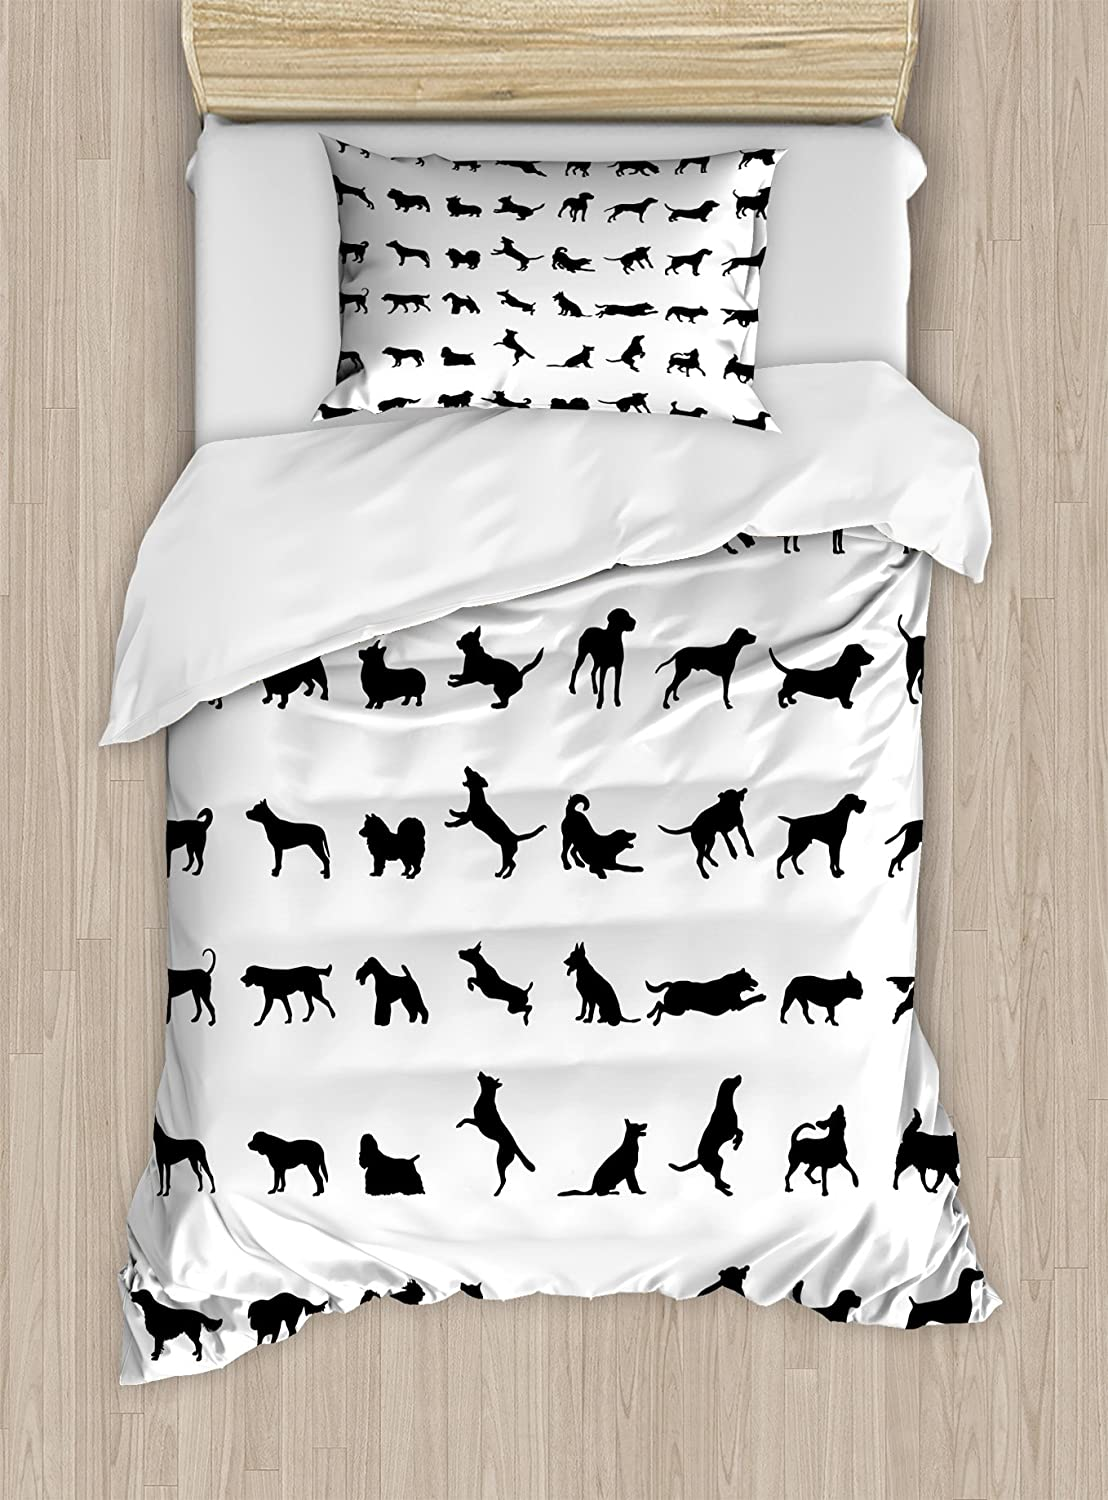 Lunarable Black and White Duvet Cover Set, Different Silhouettes Dogs Various Breeds Corgi Golden Retriever Pitbull, Decorative 2 Piece Bedding Set with 1 Pillow Sham, Twin Size, Black and White